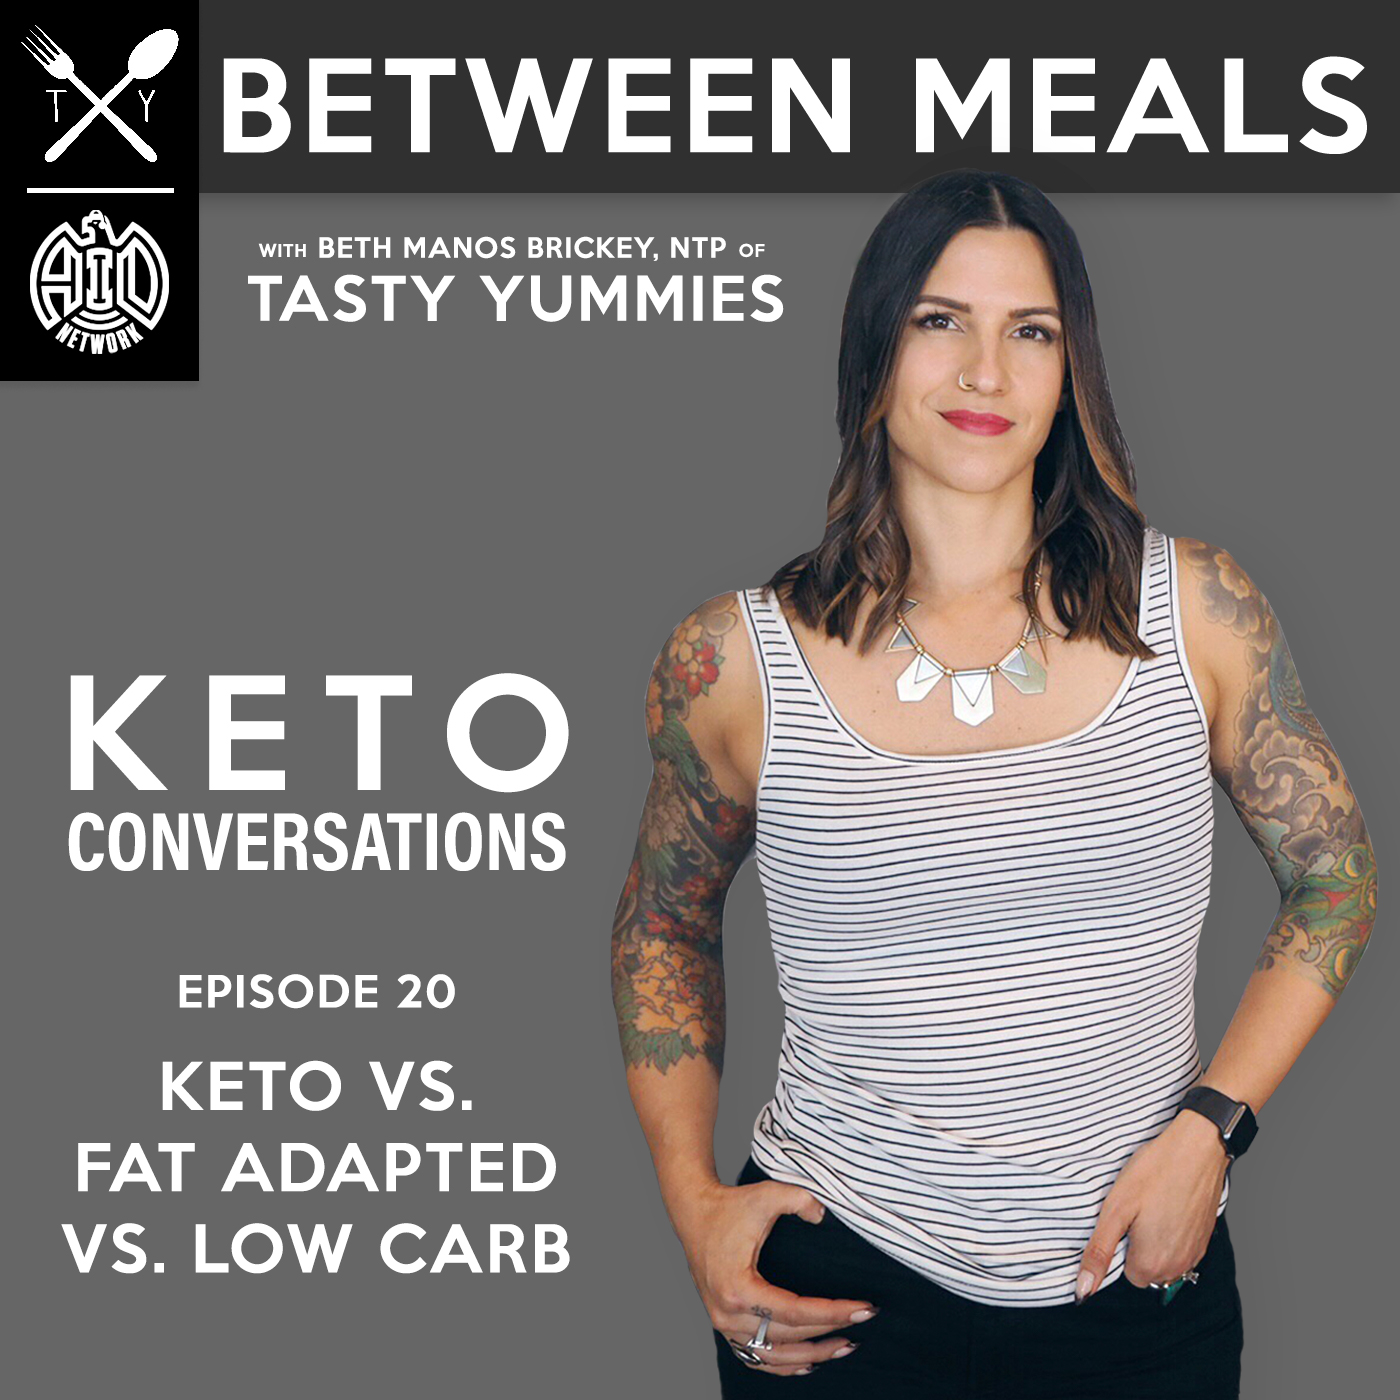 Between Meals Podcast. Episode 20: Keto vs. Fat Adapted vs. Low Carb